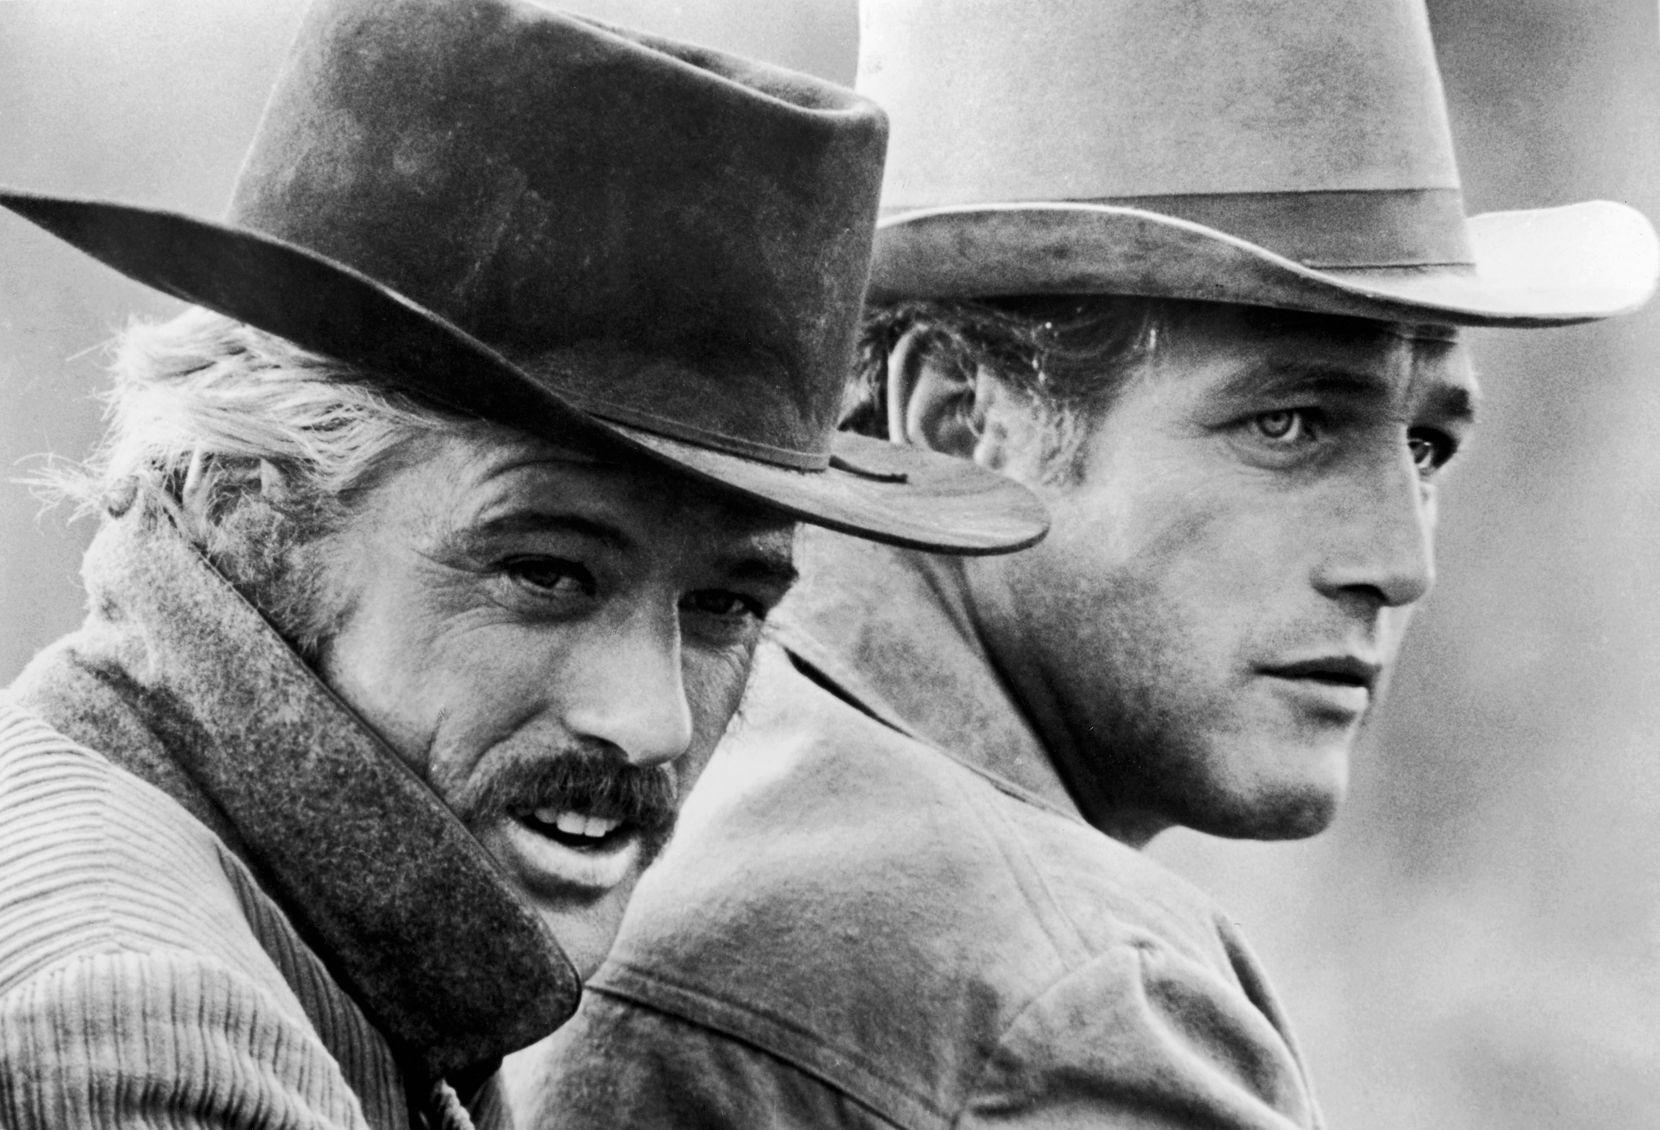 """""""Raindrops Keep Falling On My Head"""" became immortalized in the film """"Butch Cassidy and the Sundance Kid"""" by accompanying a scene in which Butch (played by Paul Newman, at right) shows off his bicycling skills. Co-star Robert Redford (left) was critical of the song's use in the film, noting the scene's lack of rain. """"How wrong I was,"""" he later said."""